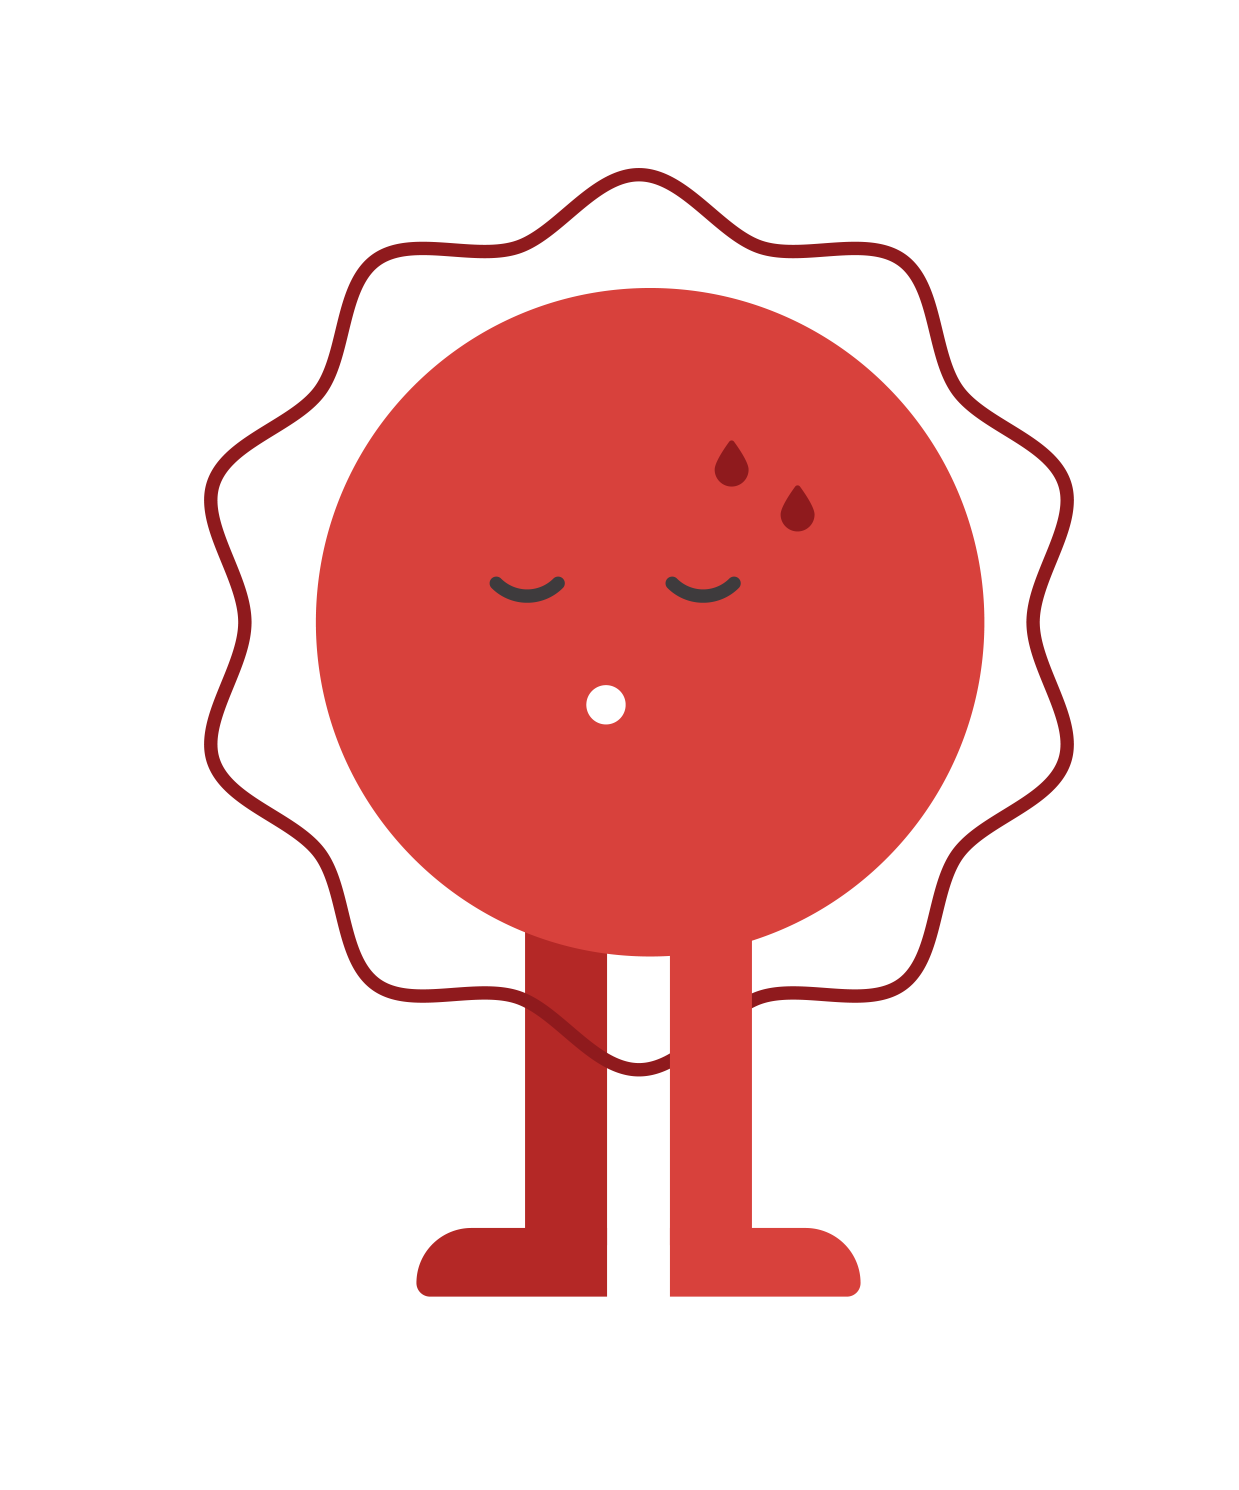 Image of a red circular stress management icon